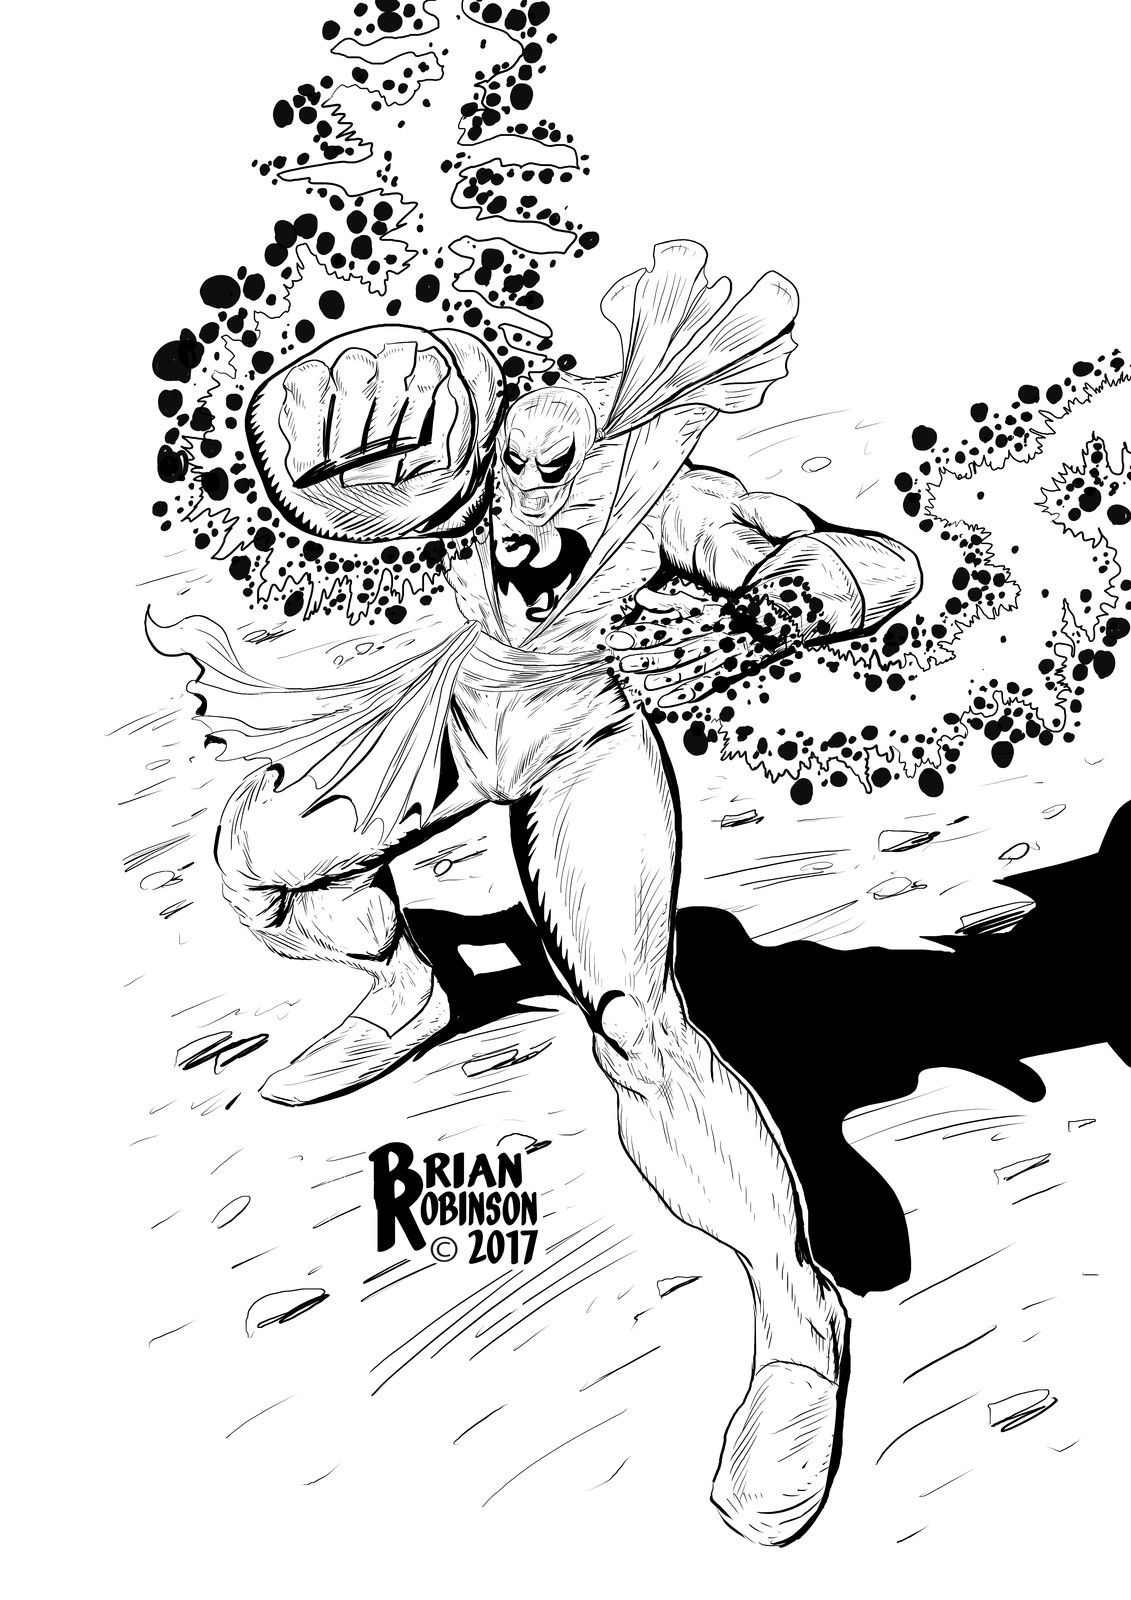 Iron Fist Drawn and inked by Brian Robinson